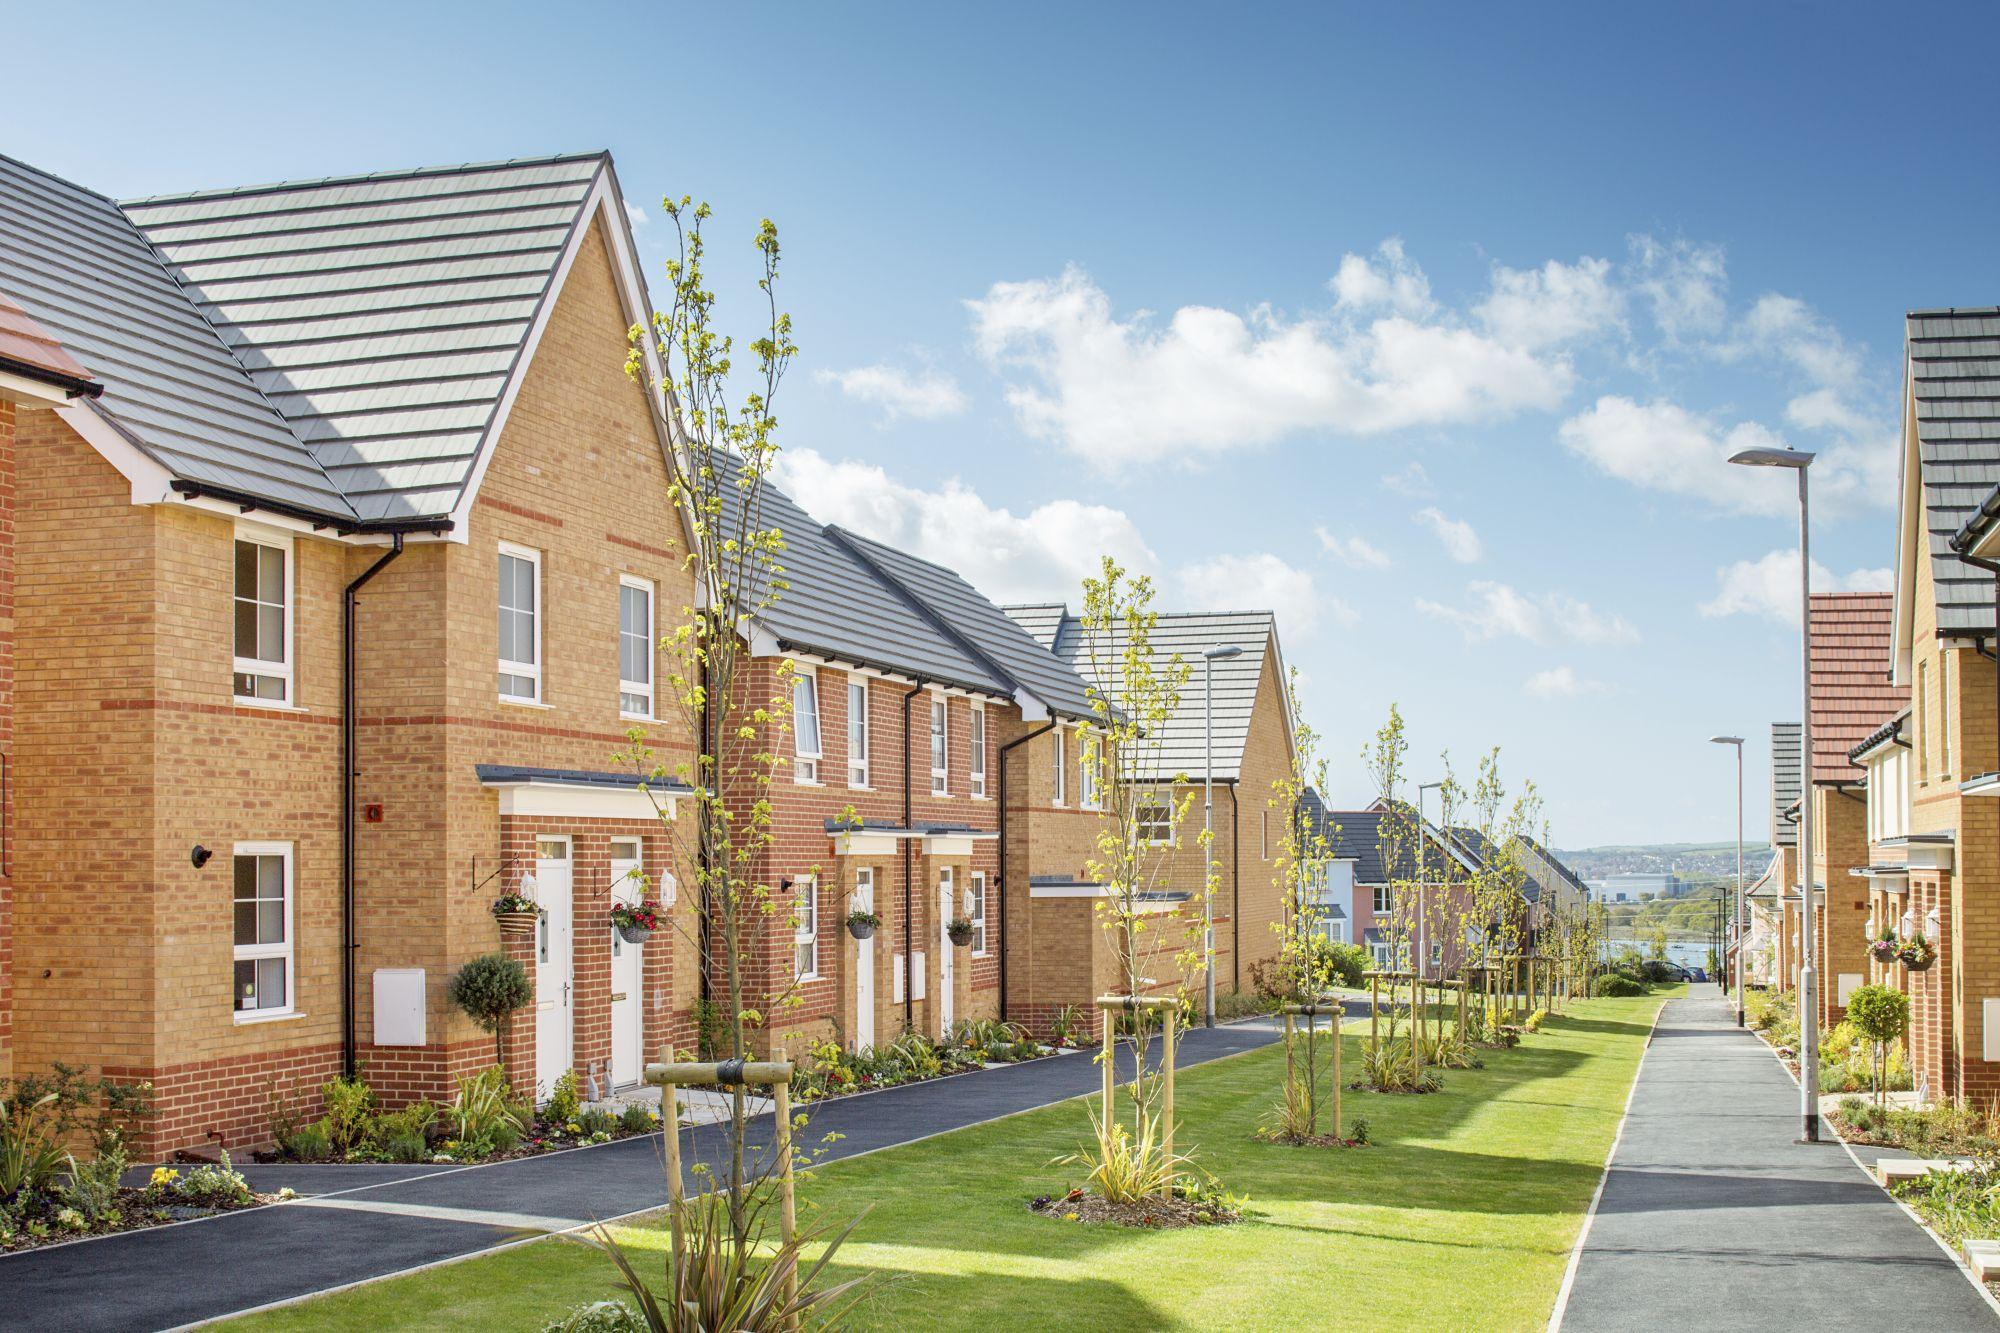 New Build Homes in Whippingham